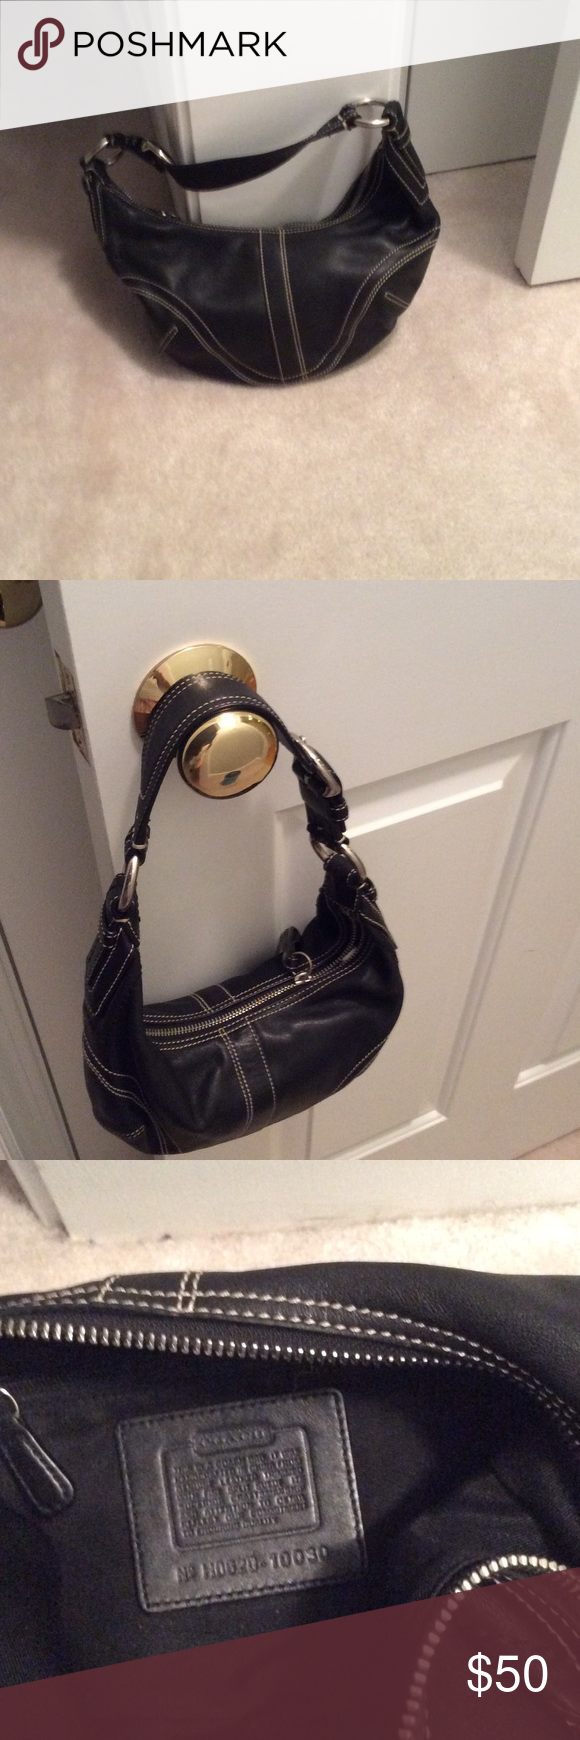 3817320b8b2 Authentic Coach Small Hobo Bag Authentic Coach Small, black hobo style bag.  Interior zip pocket, prefect for going out or daily use.